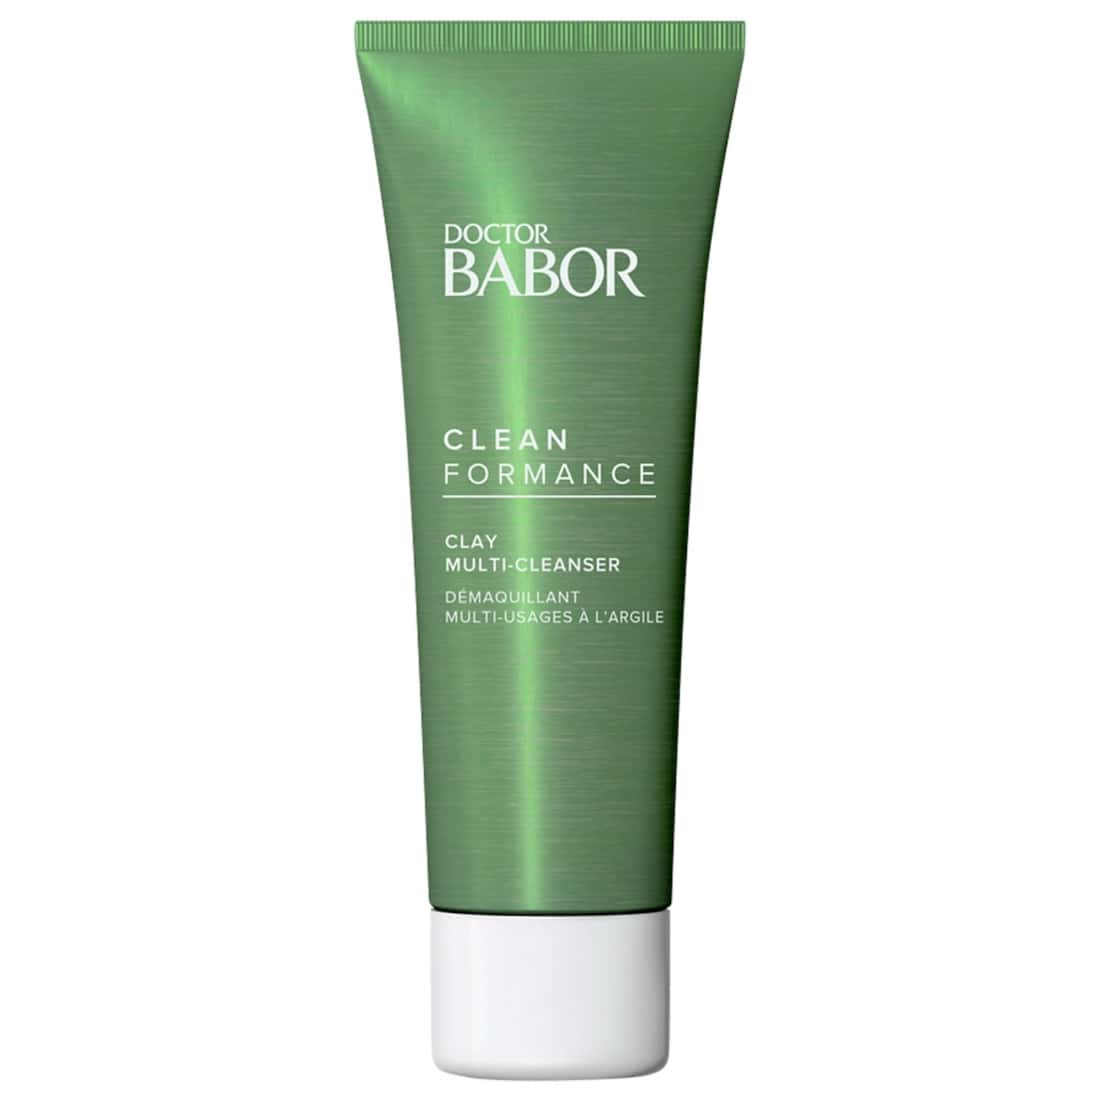 Doctor Babor Cleanformance Clay Multi-Cleanser 50ml